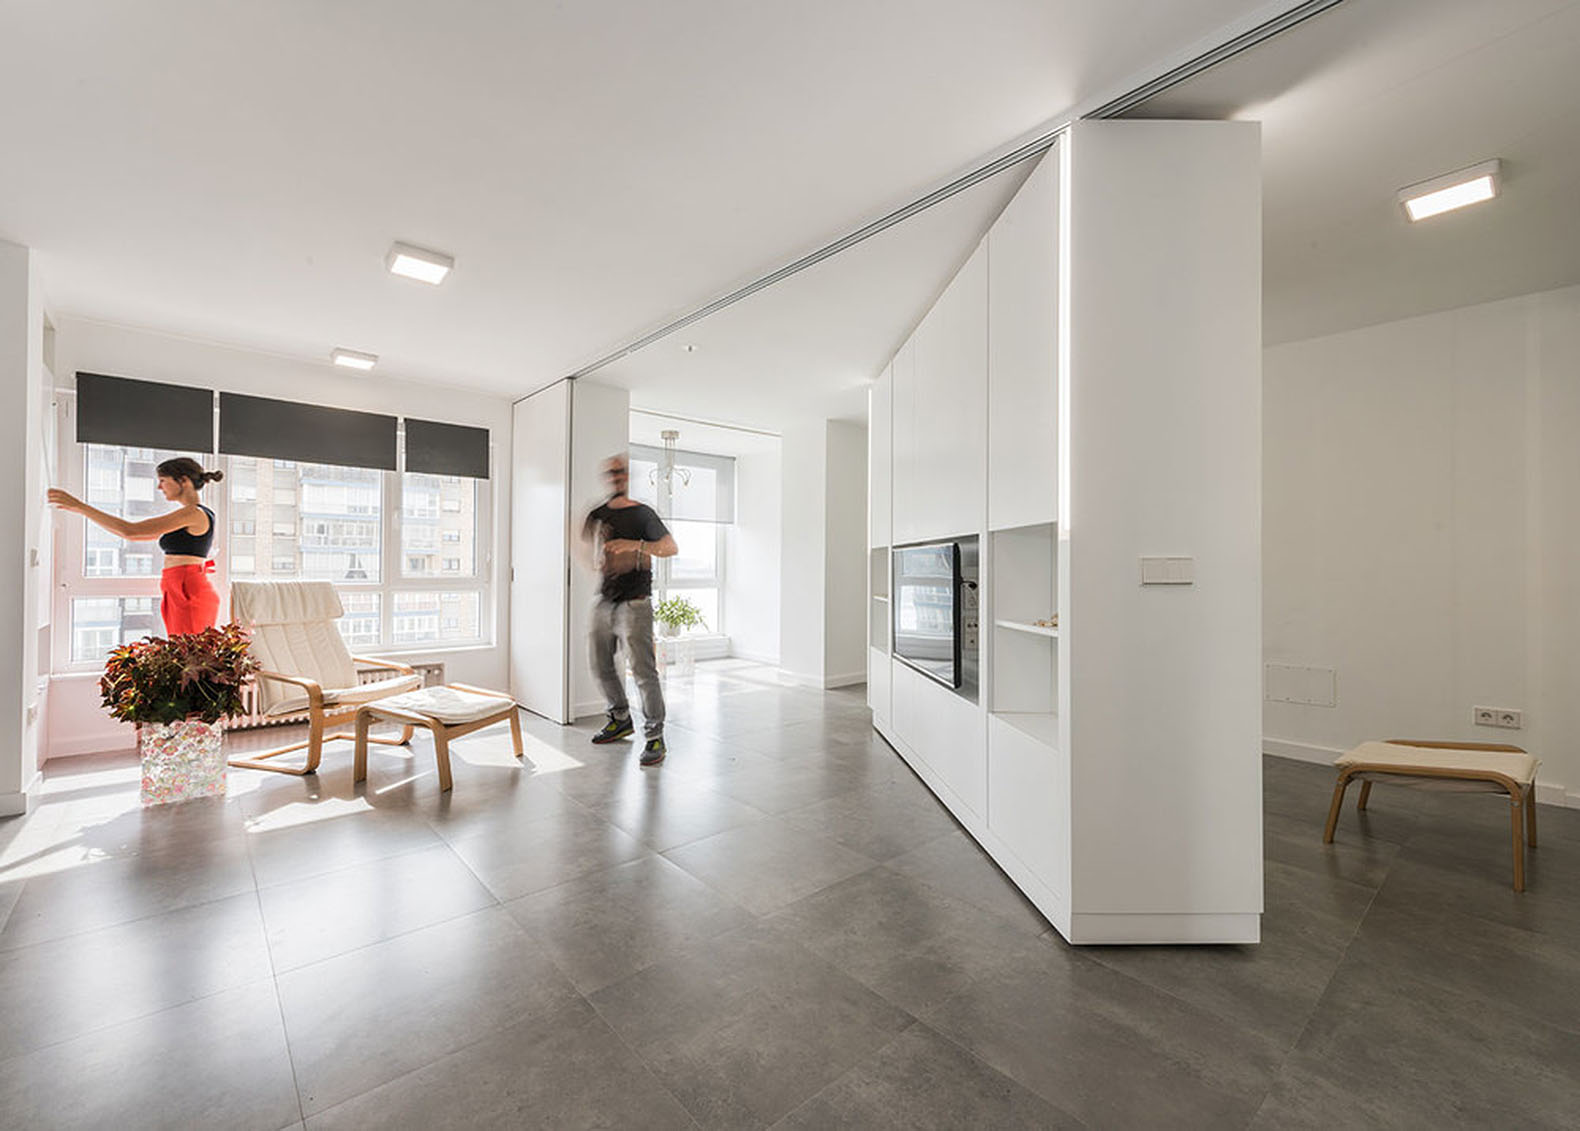 Rotating Walls And Transforming Furniture Make Two Rooms Vanish In The  U201cLittle Bigu201d MJE House